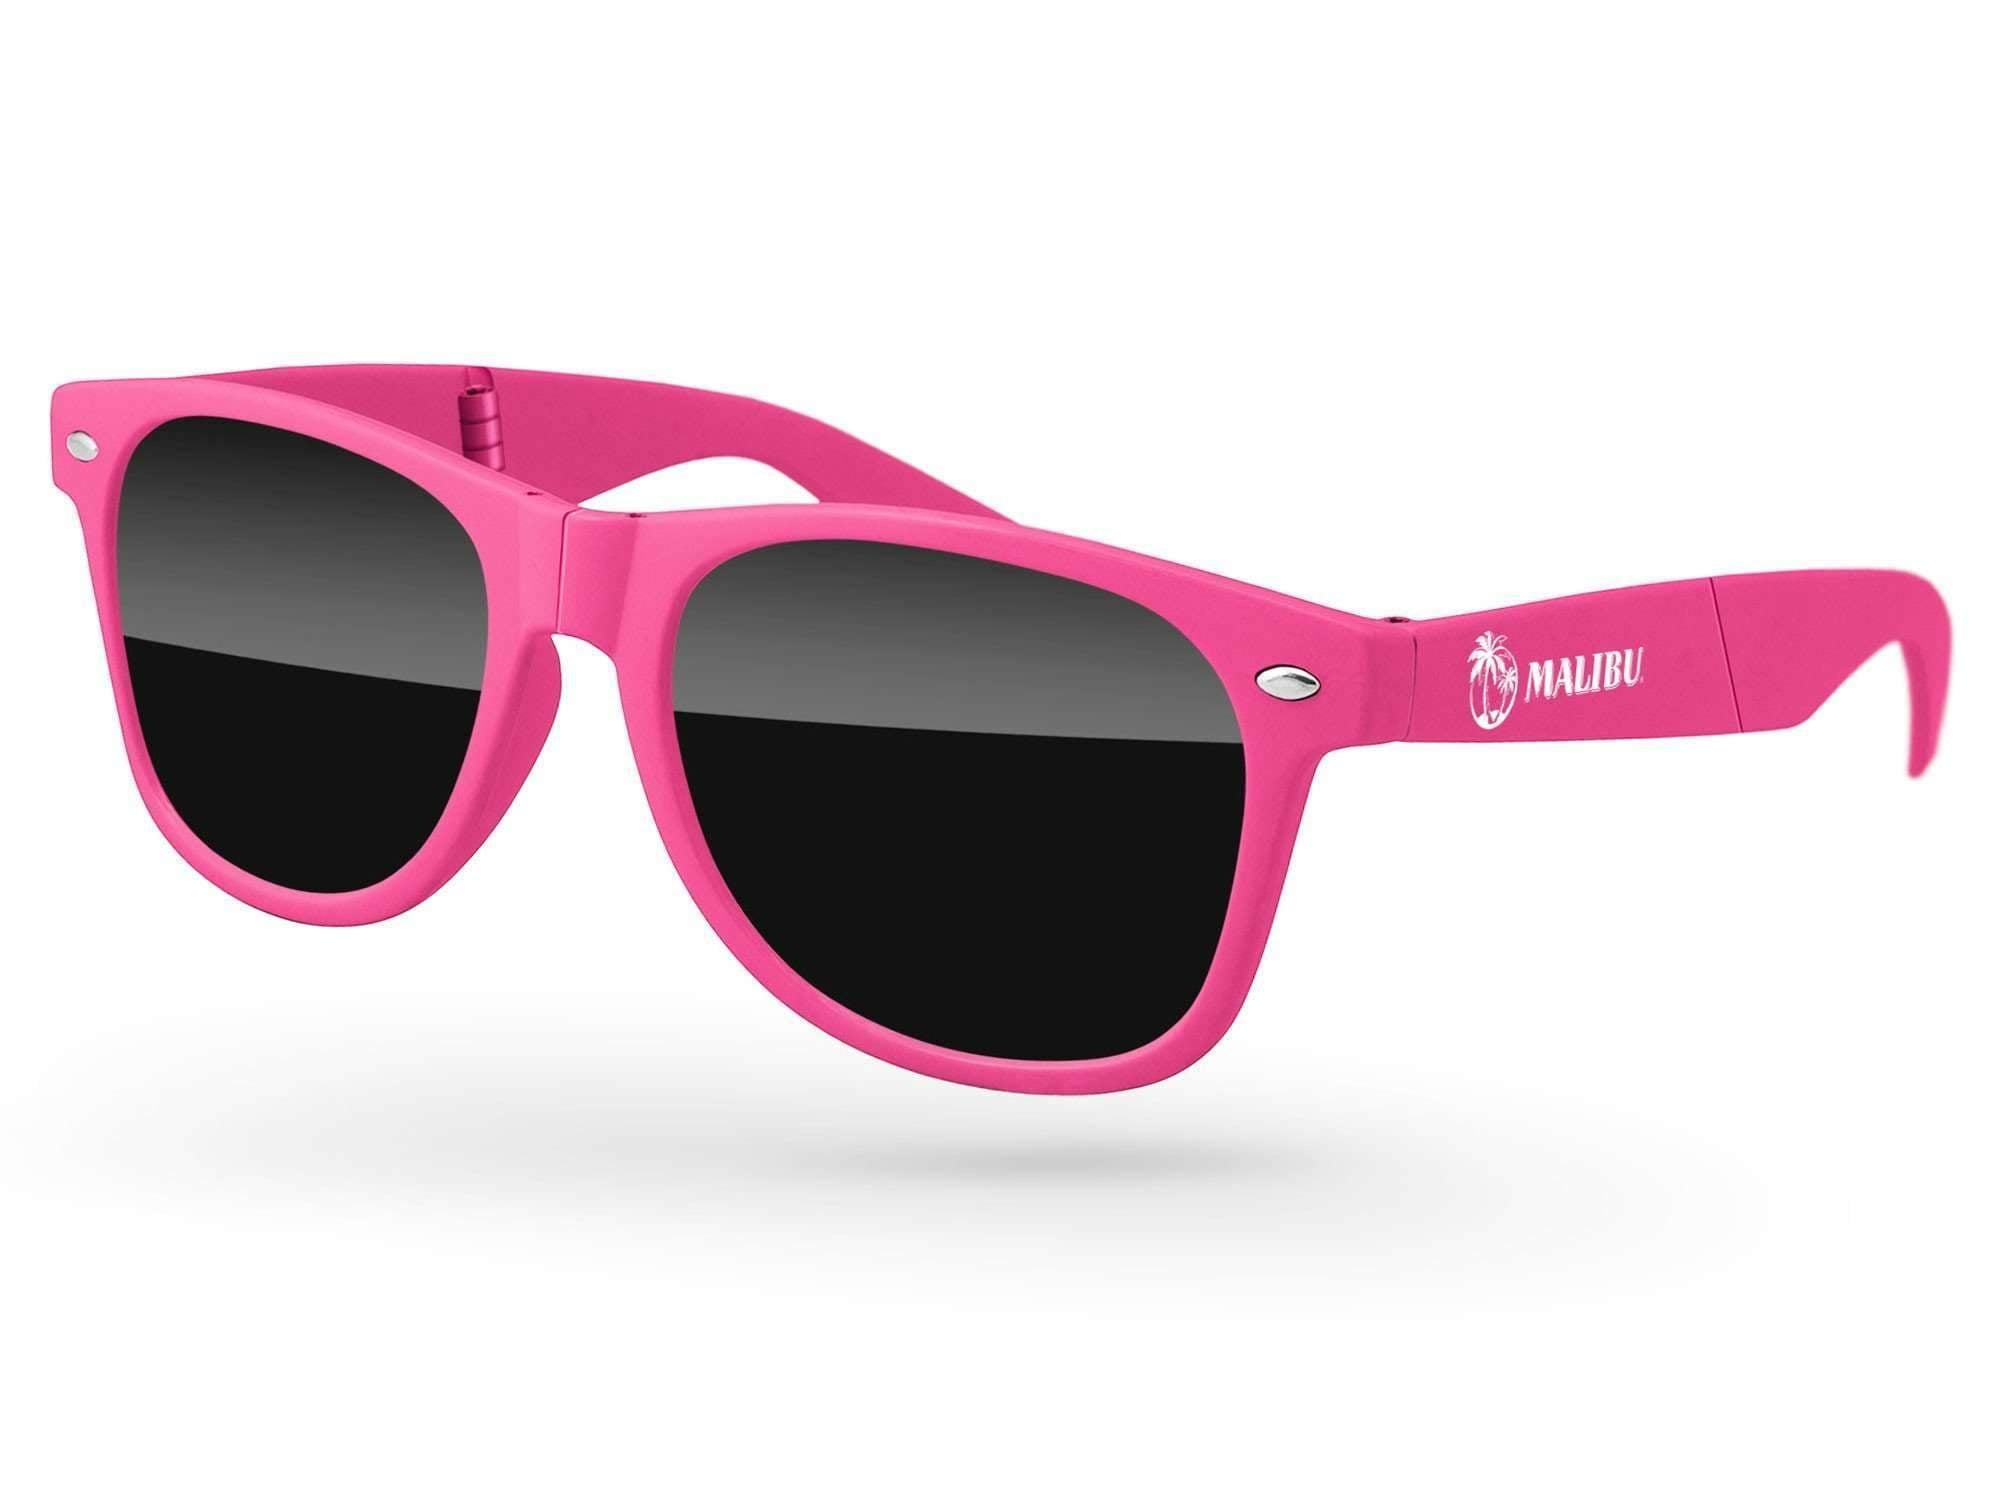 RD010-F - Foldable Retro Promotional Sunglasses w/ 1-color temple imprint